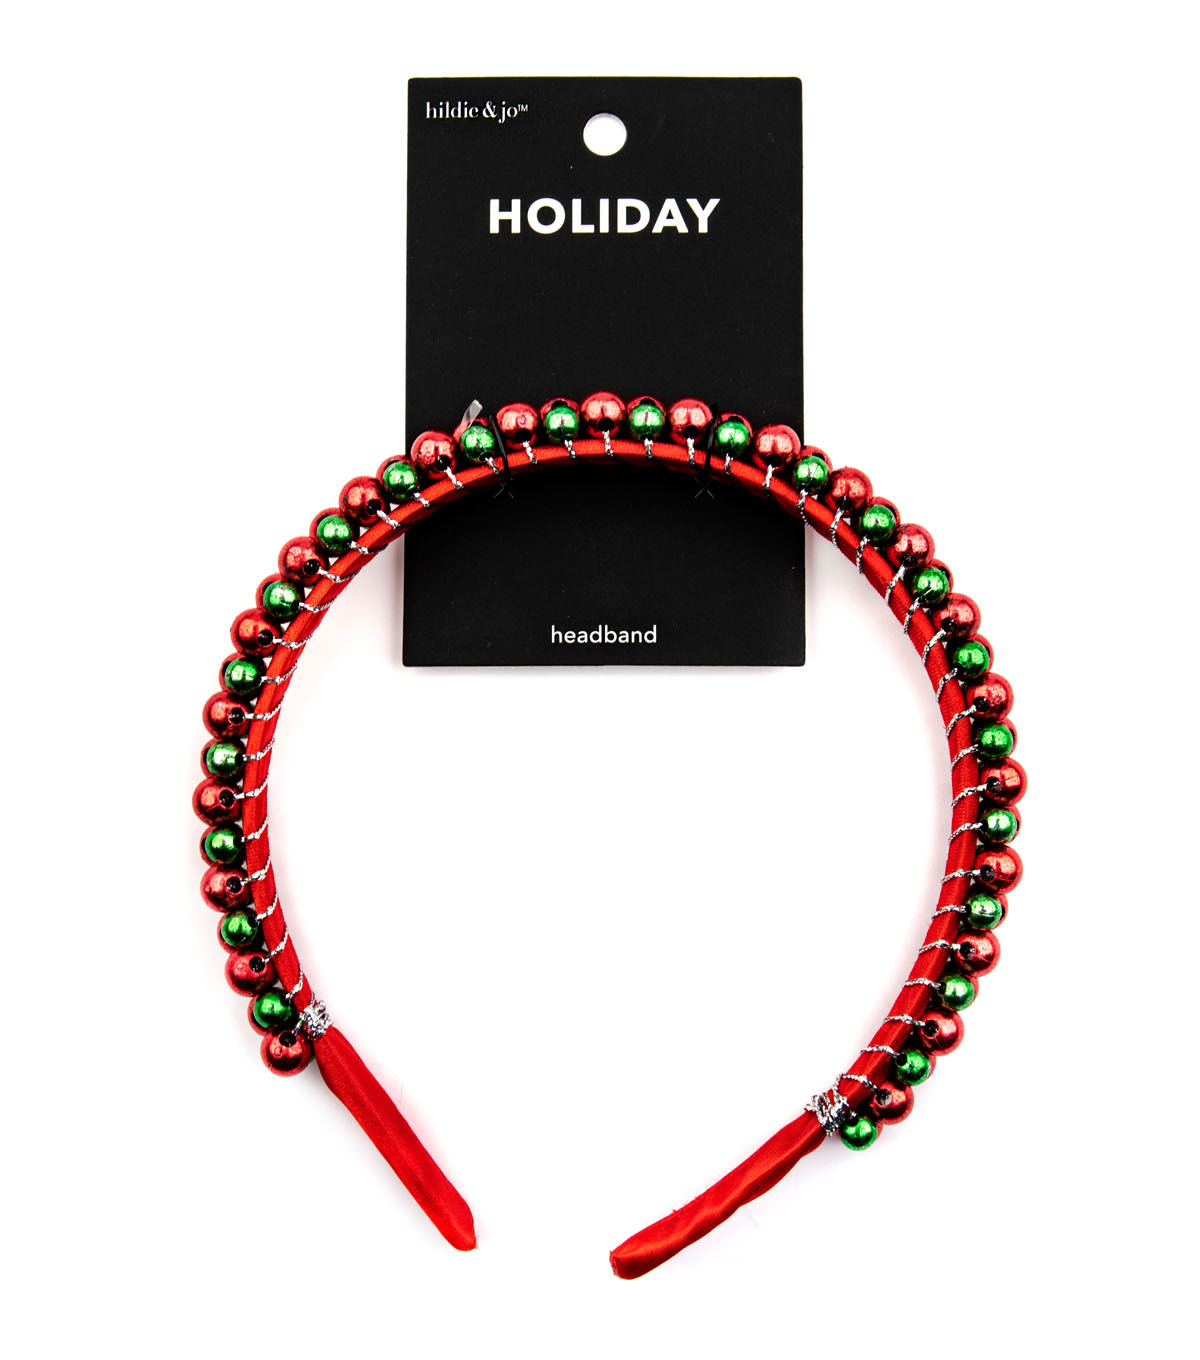 hildie & jo Holiday Headband-Red And Green Jingle Bell